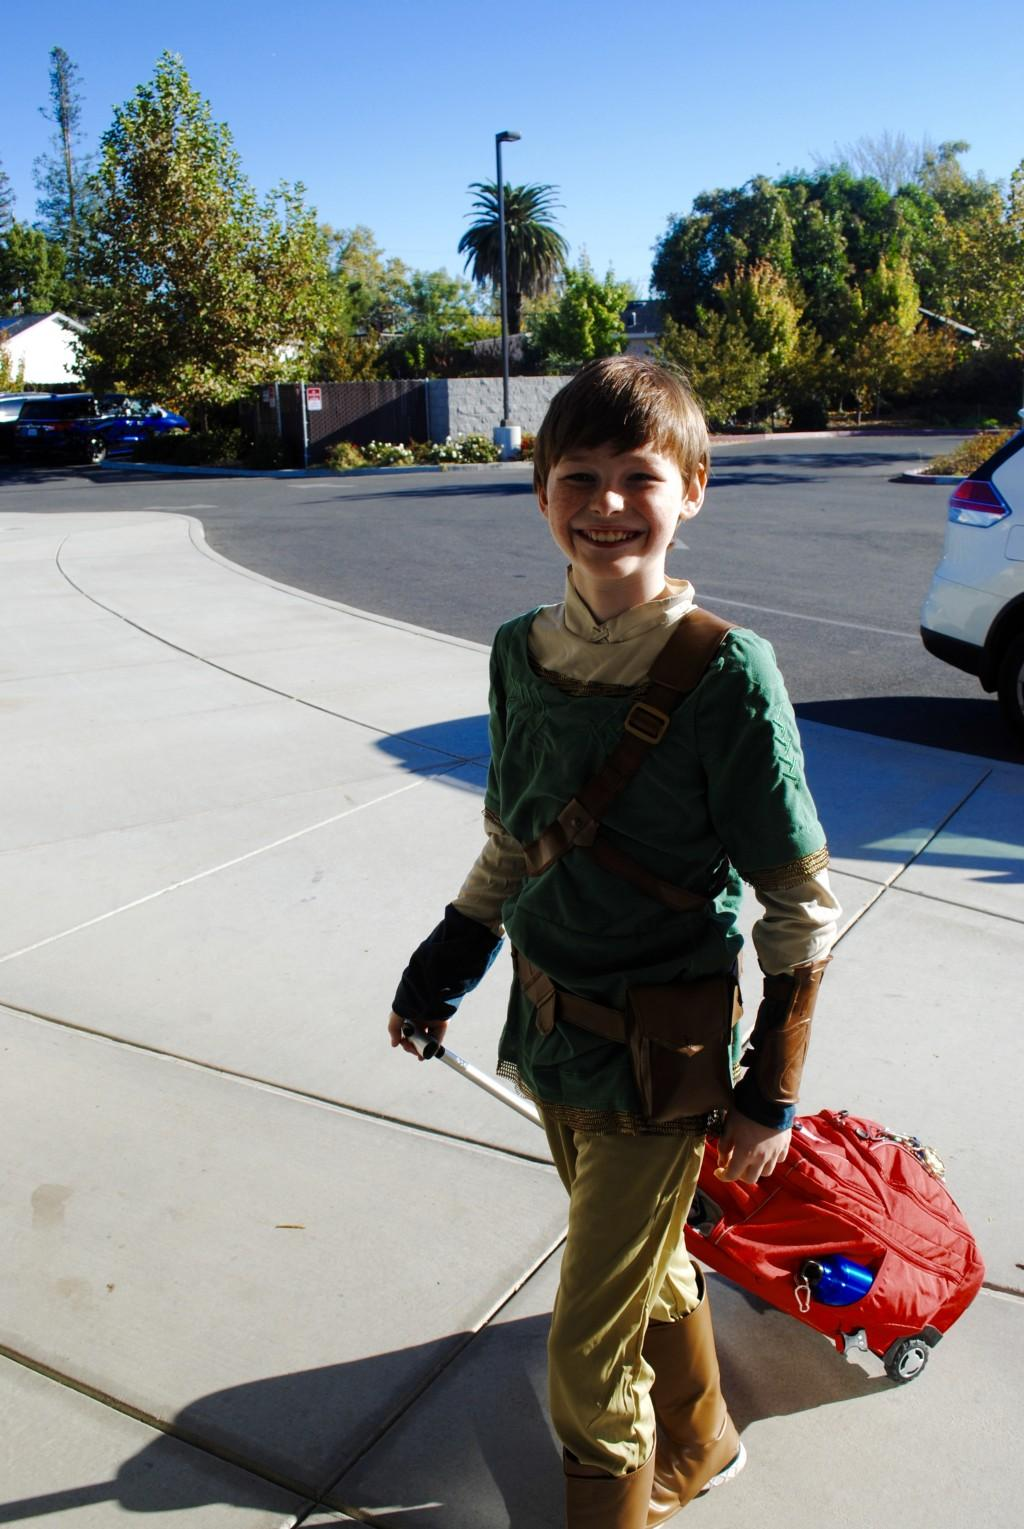 Student dressed up as Robin Hood